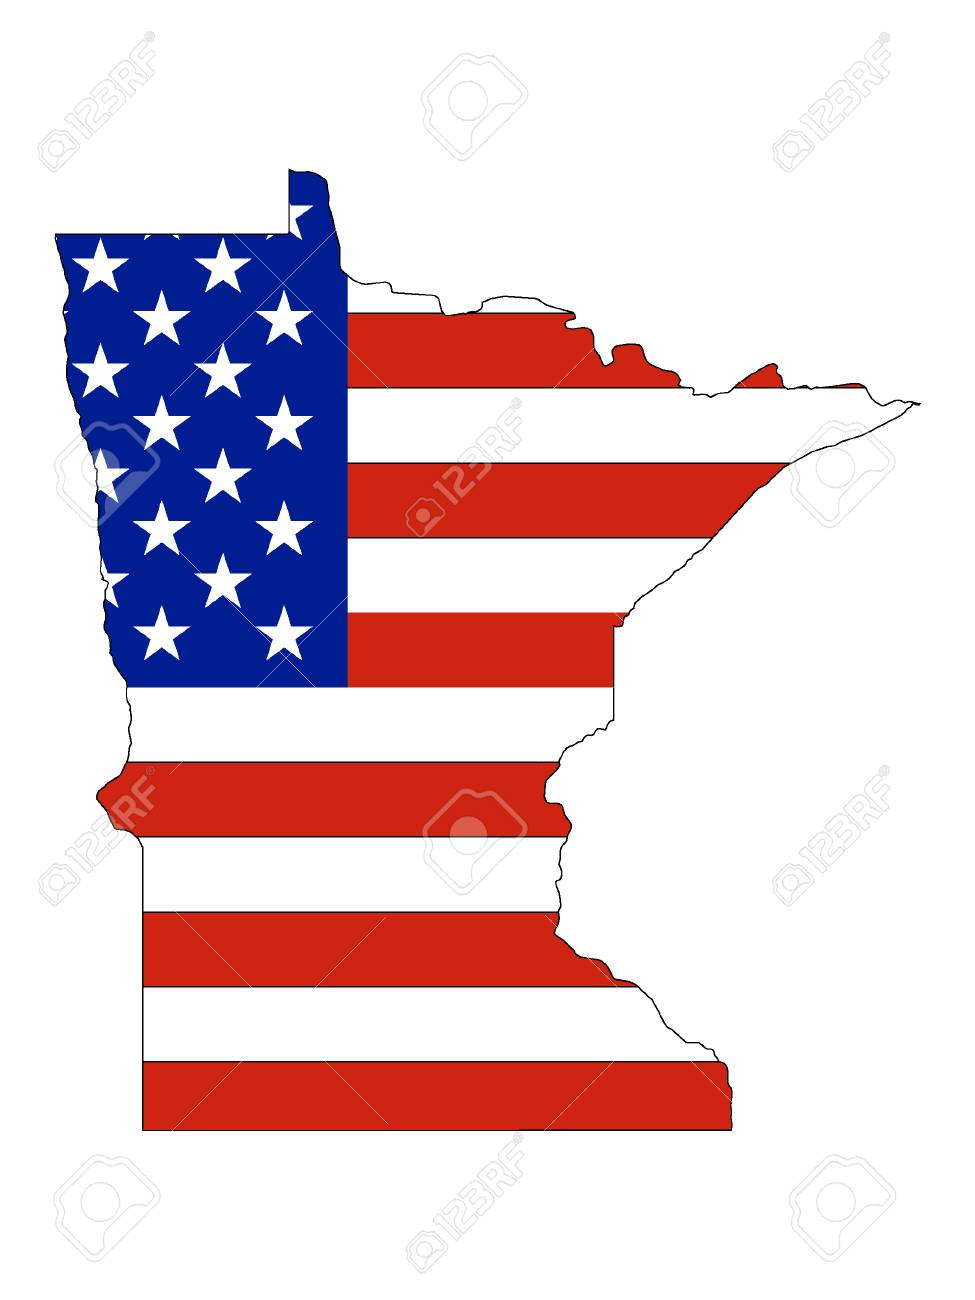 Minnesota map combined with US flag